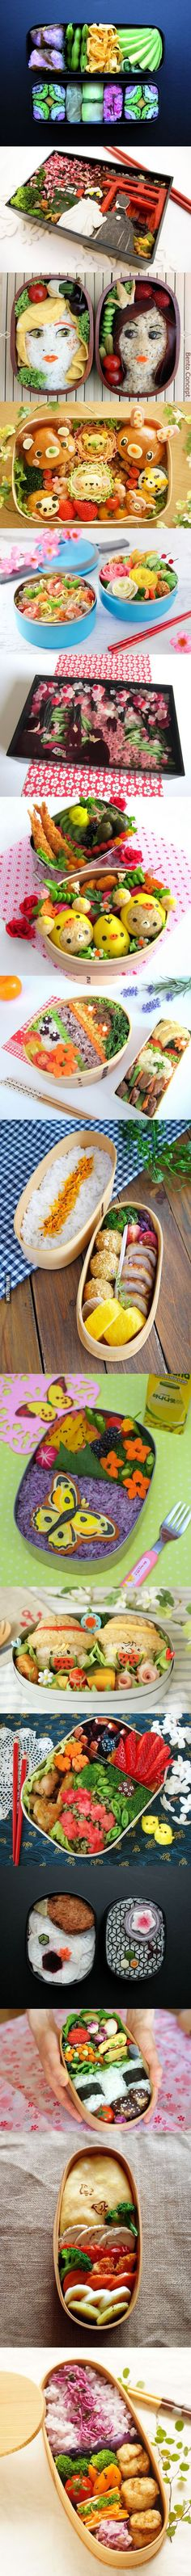 Bento Boxes- pinning for the beautiful top one